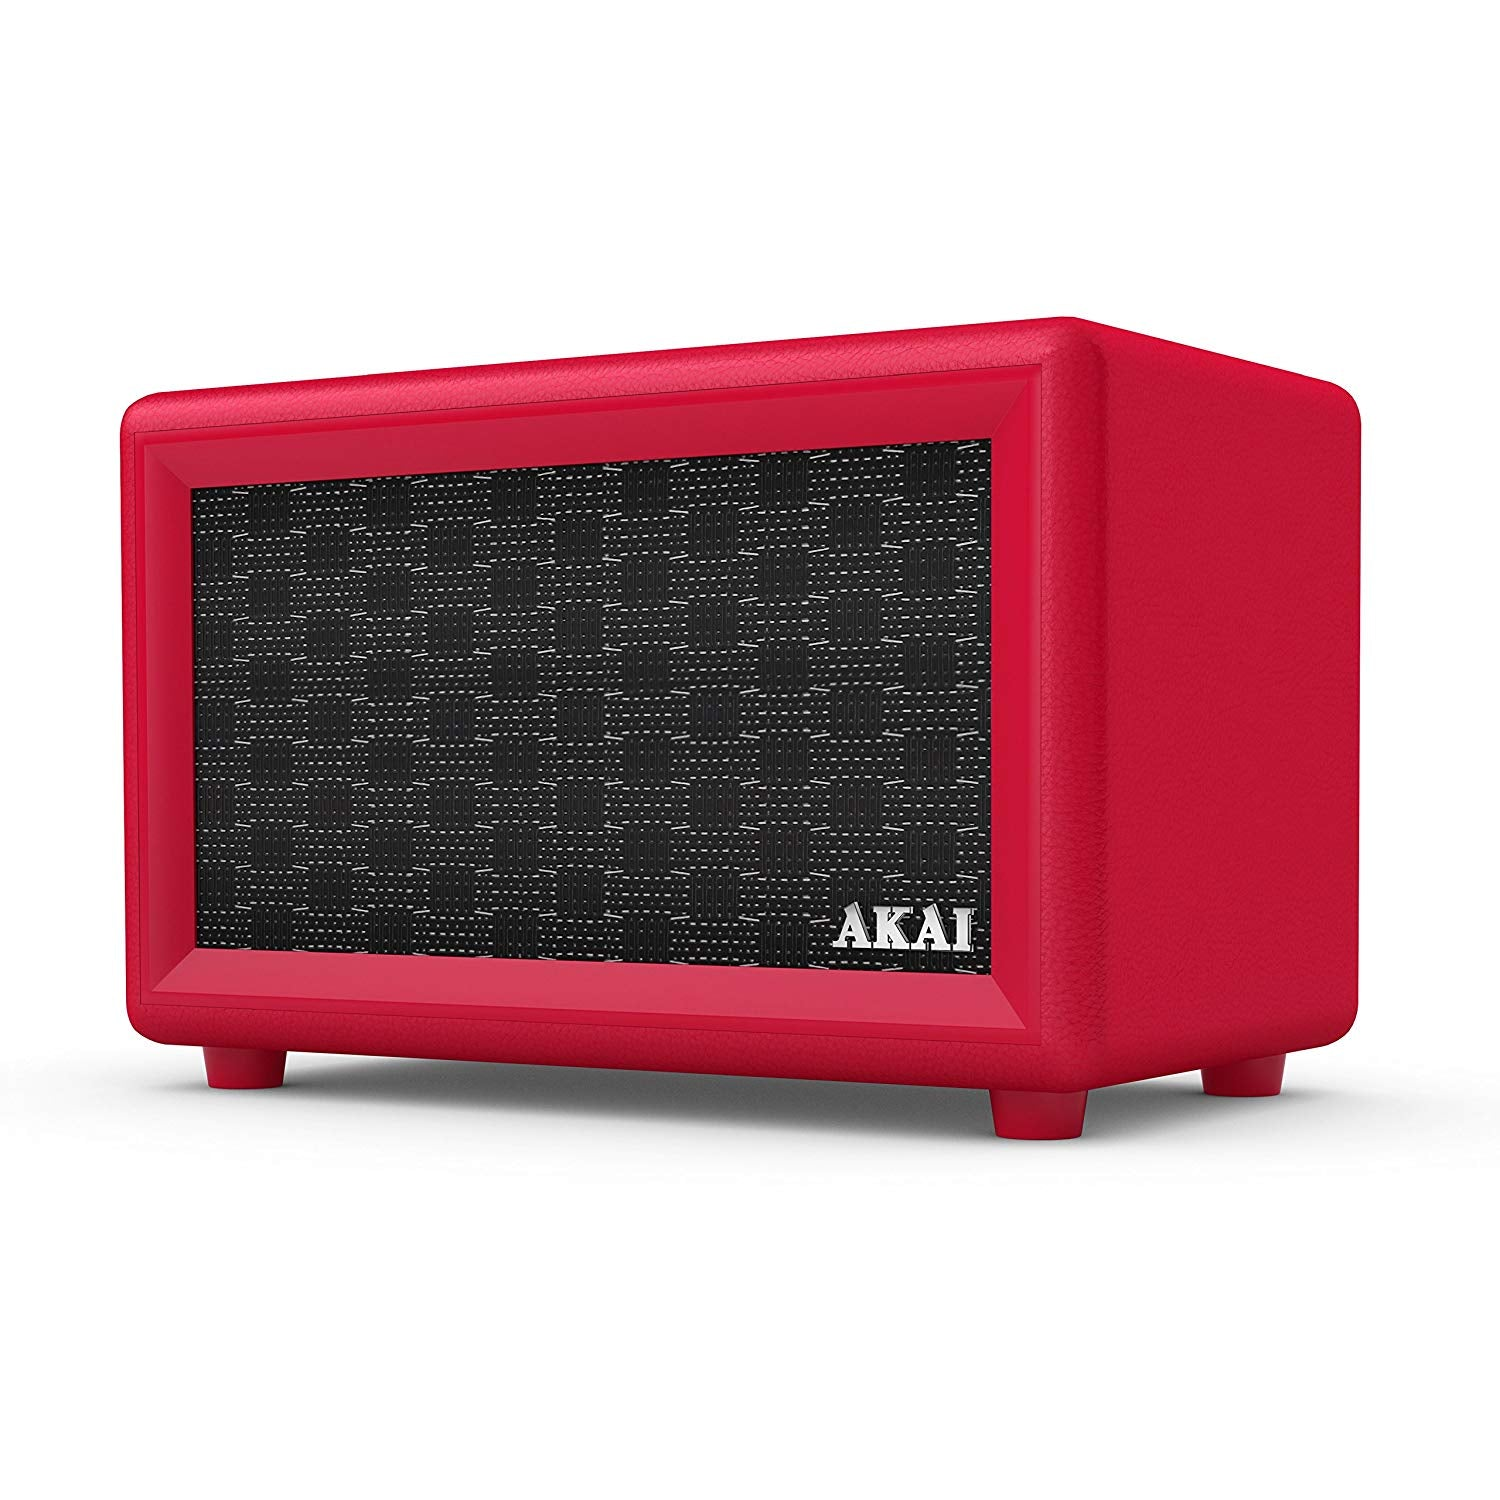 AKAI RETRO DESIGN BLUETOOTH SPEAKER WITH BUILT-IN RECHARGEABLE BATTERY: RED [TECH & TURNTABLES] GOLDEN DISCS